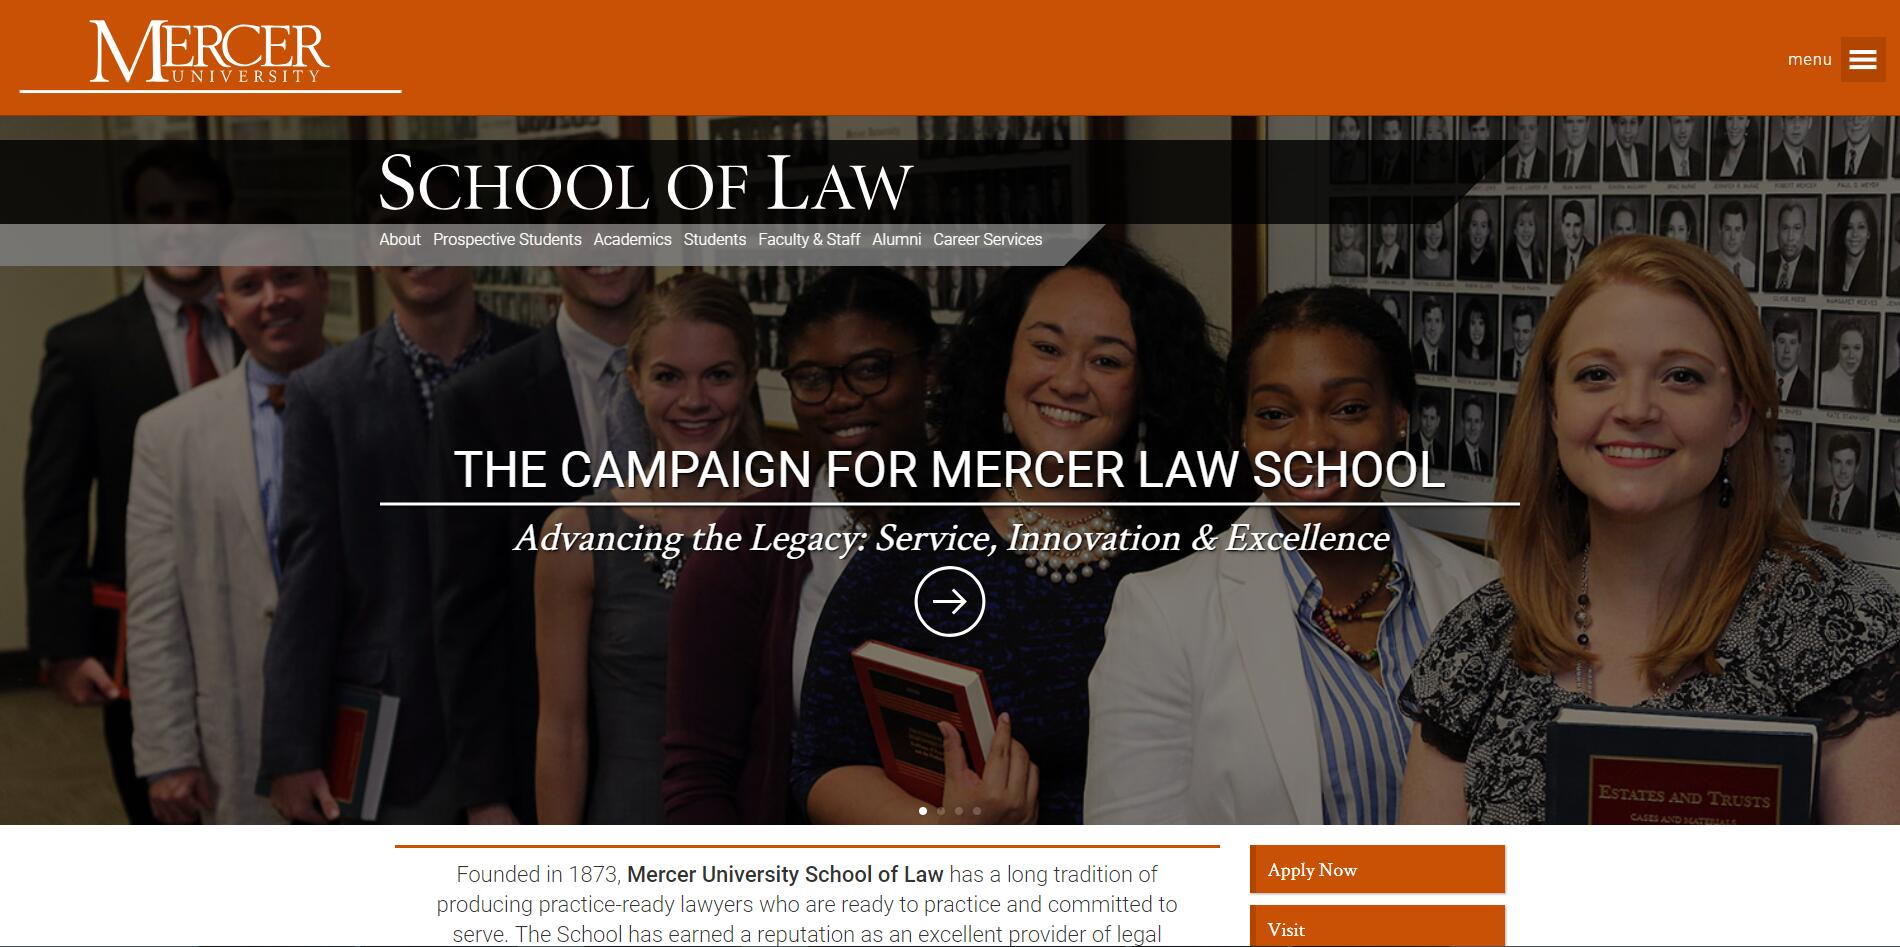 The Walter F. George School of Law at Mercer University